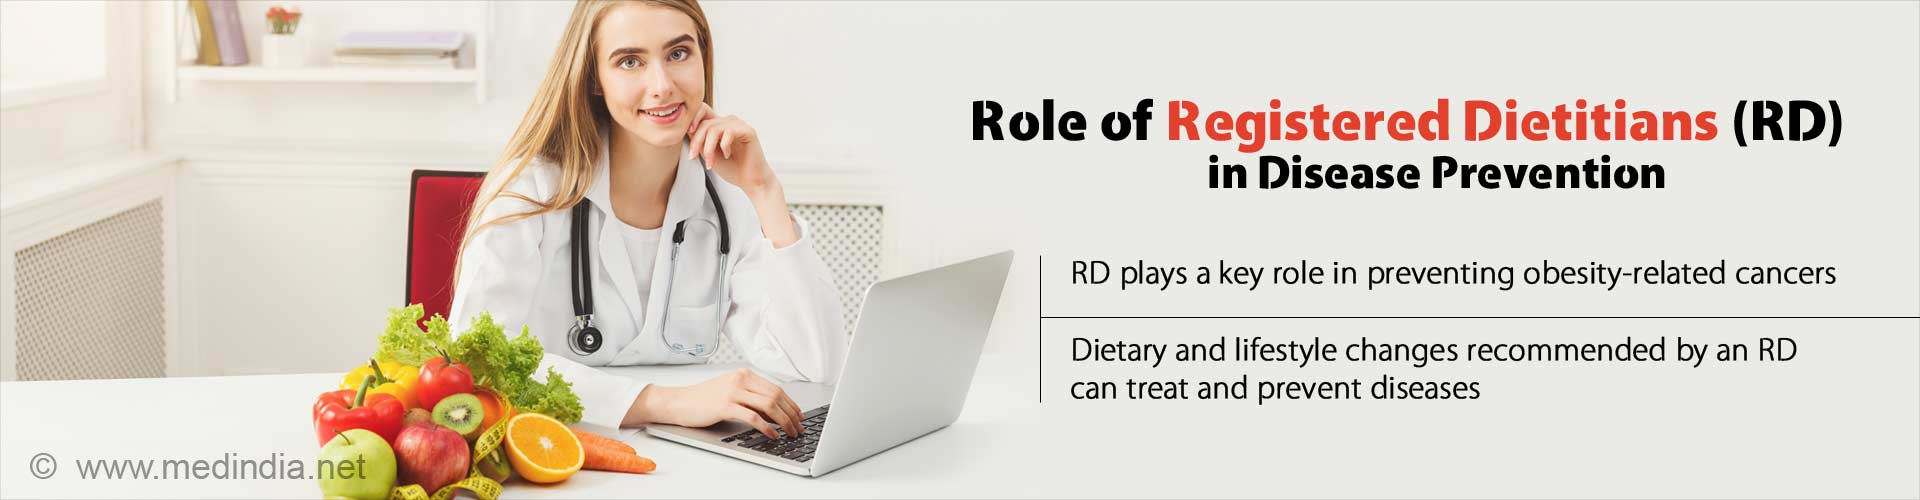 Registered Dietitians Play A Key Role in Preventing Obesity-related Cancers